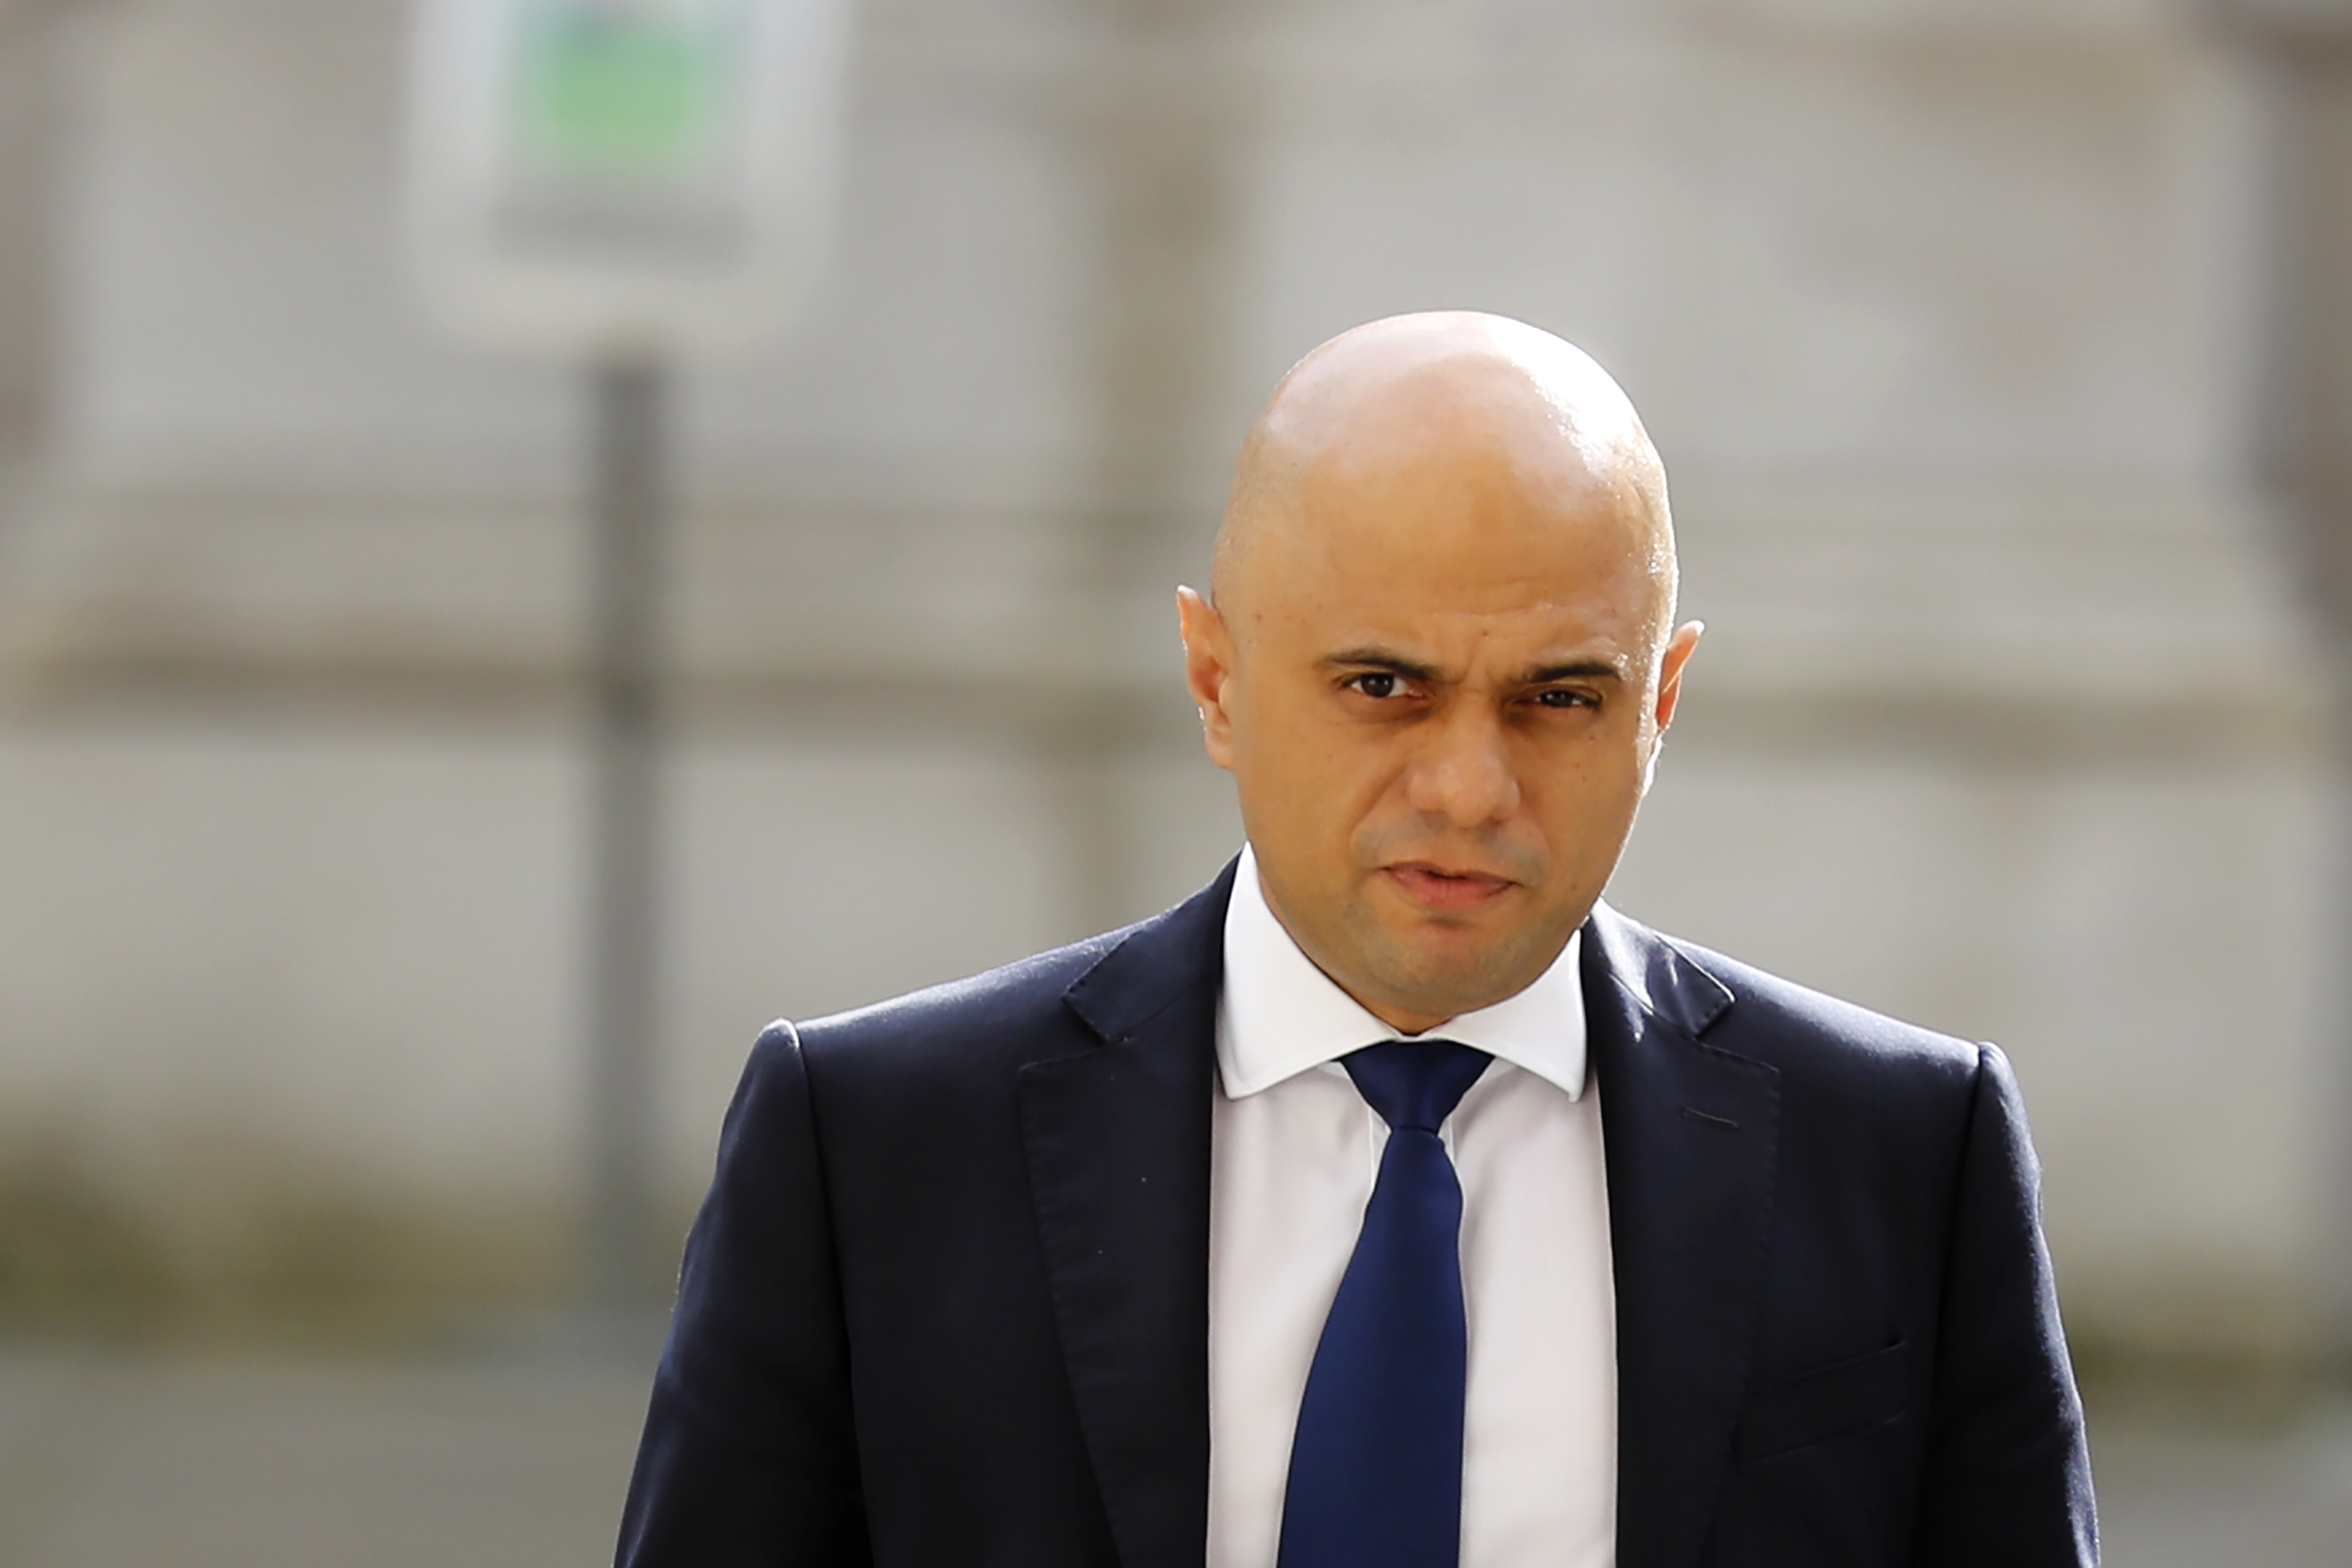 Britain's Chancellor of the Exchequer Sajid Javid.